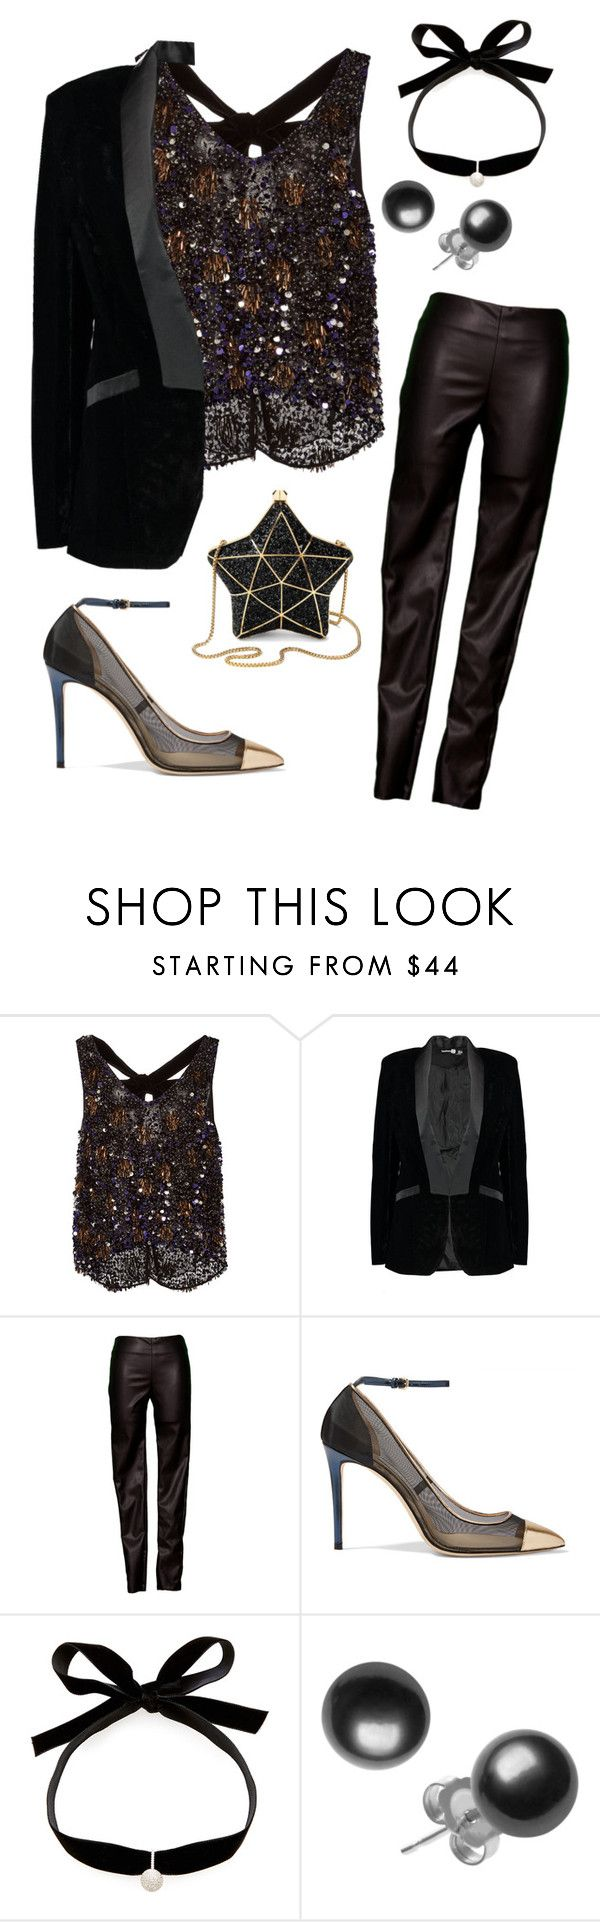 """""""NYE"""" by jessiefine24 ❤ liked on Polyvore featuring Monique Lhuillier, Boohoo, Velvet by Graham & Spencer, Jimmy Choo, Mateo and Aspinal of London"""